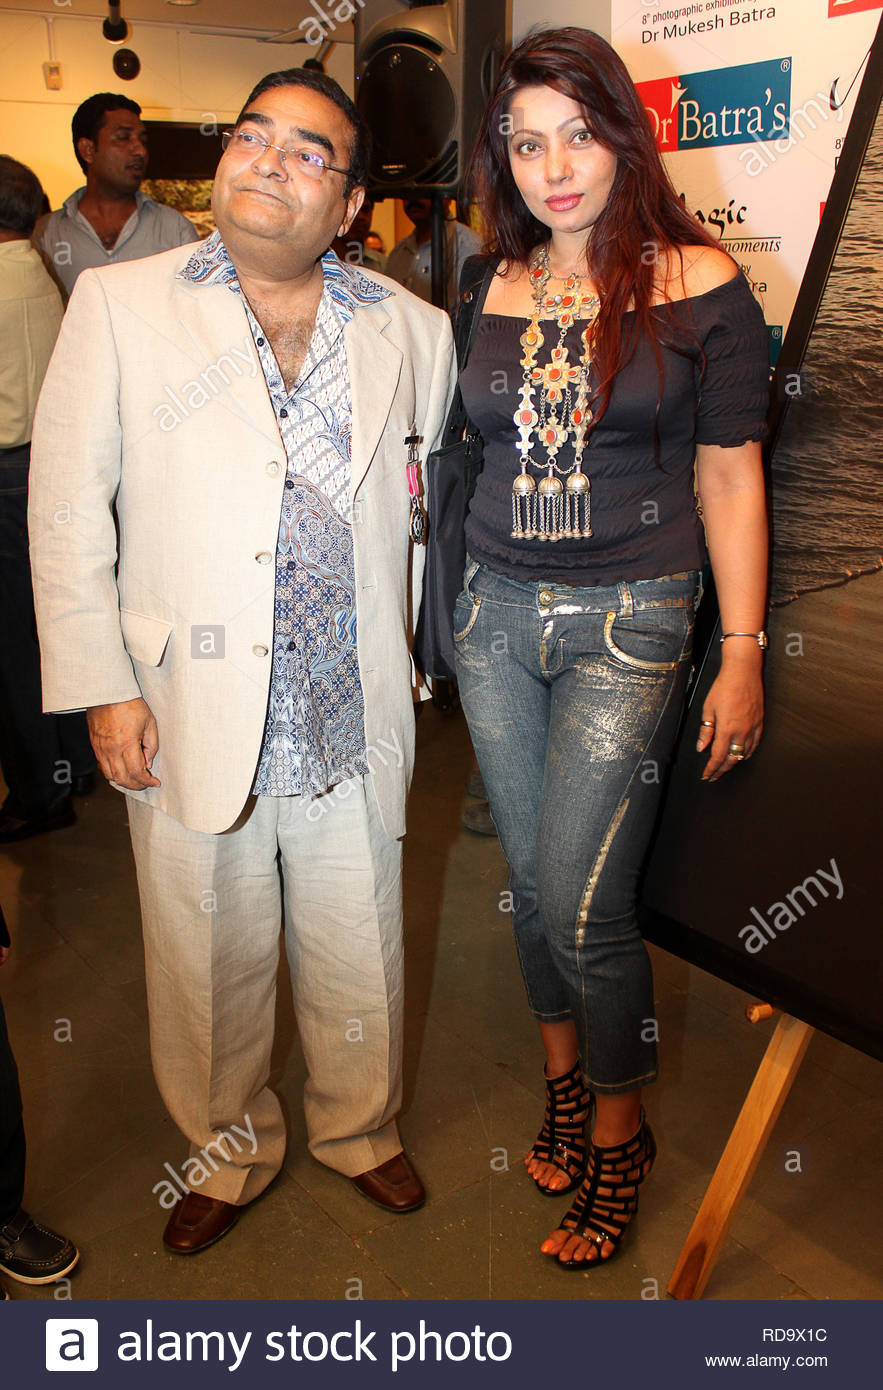 Homeopath Dr Mukesh Batra (L) with Bollywood actress Ananya Dutta at the inauguration of his 8th annual charity photgraphy exhibition in Mumbai, India on September 13, 2012. (SOLARIS IMAGES) - Stock Image